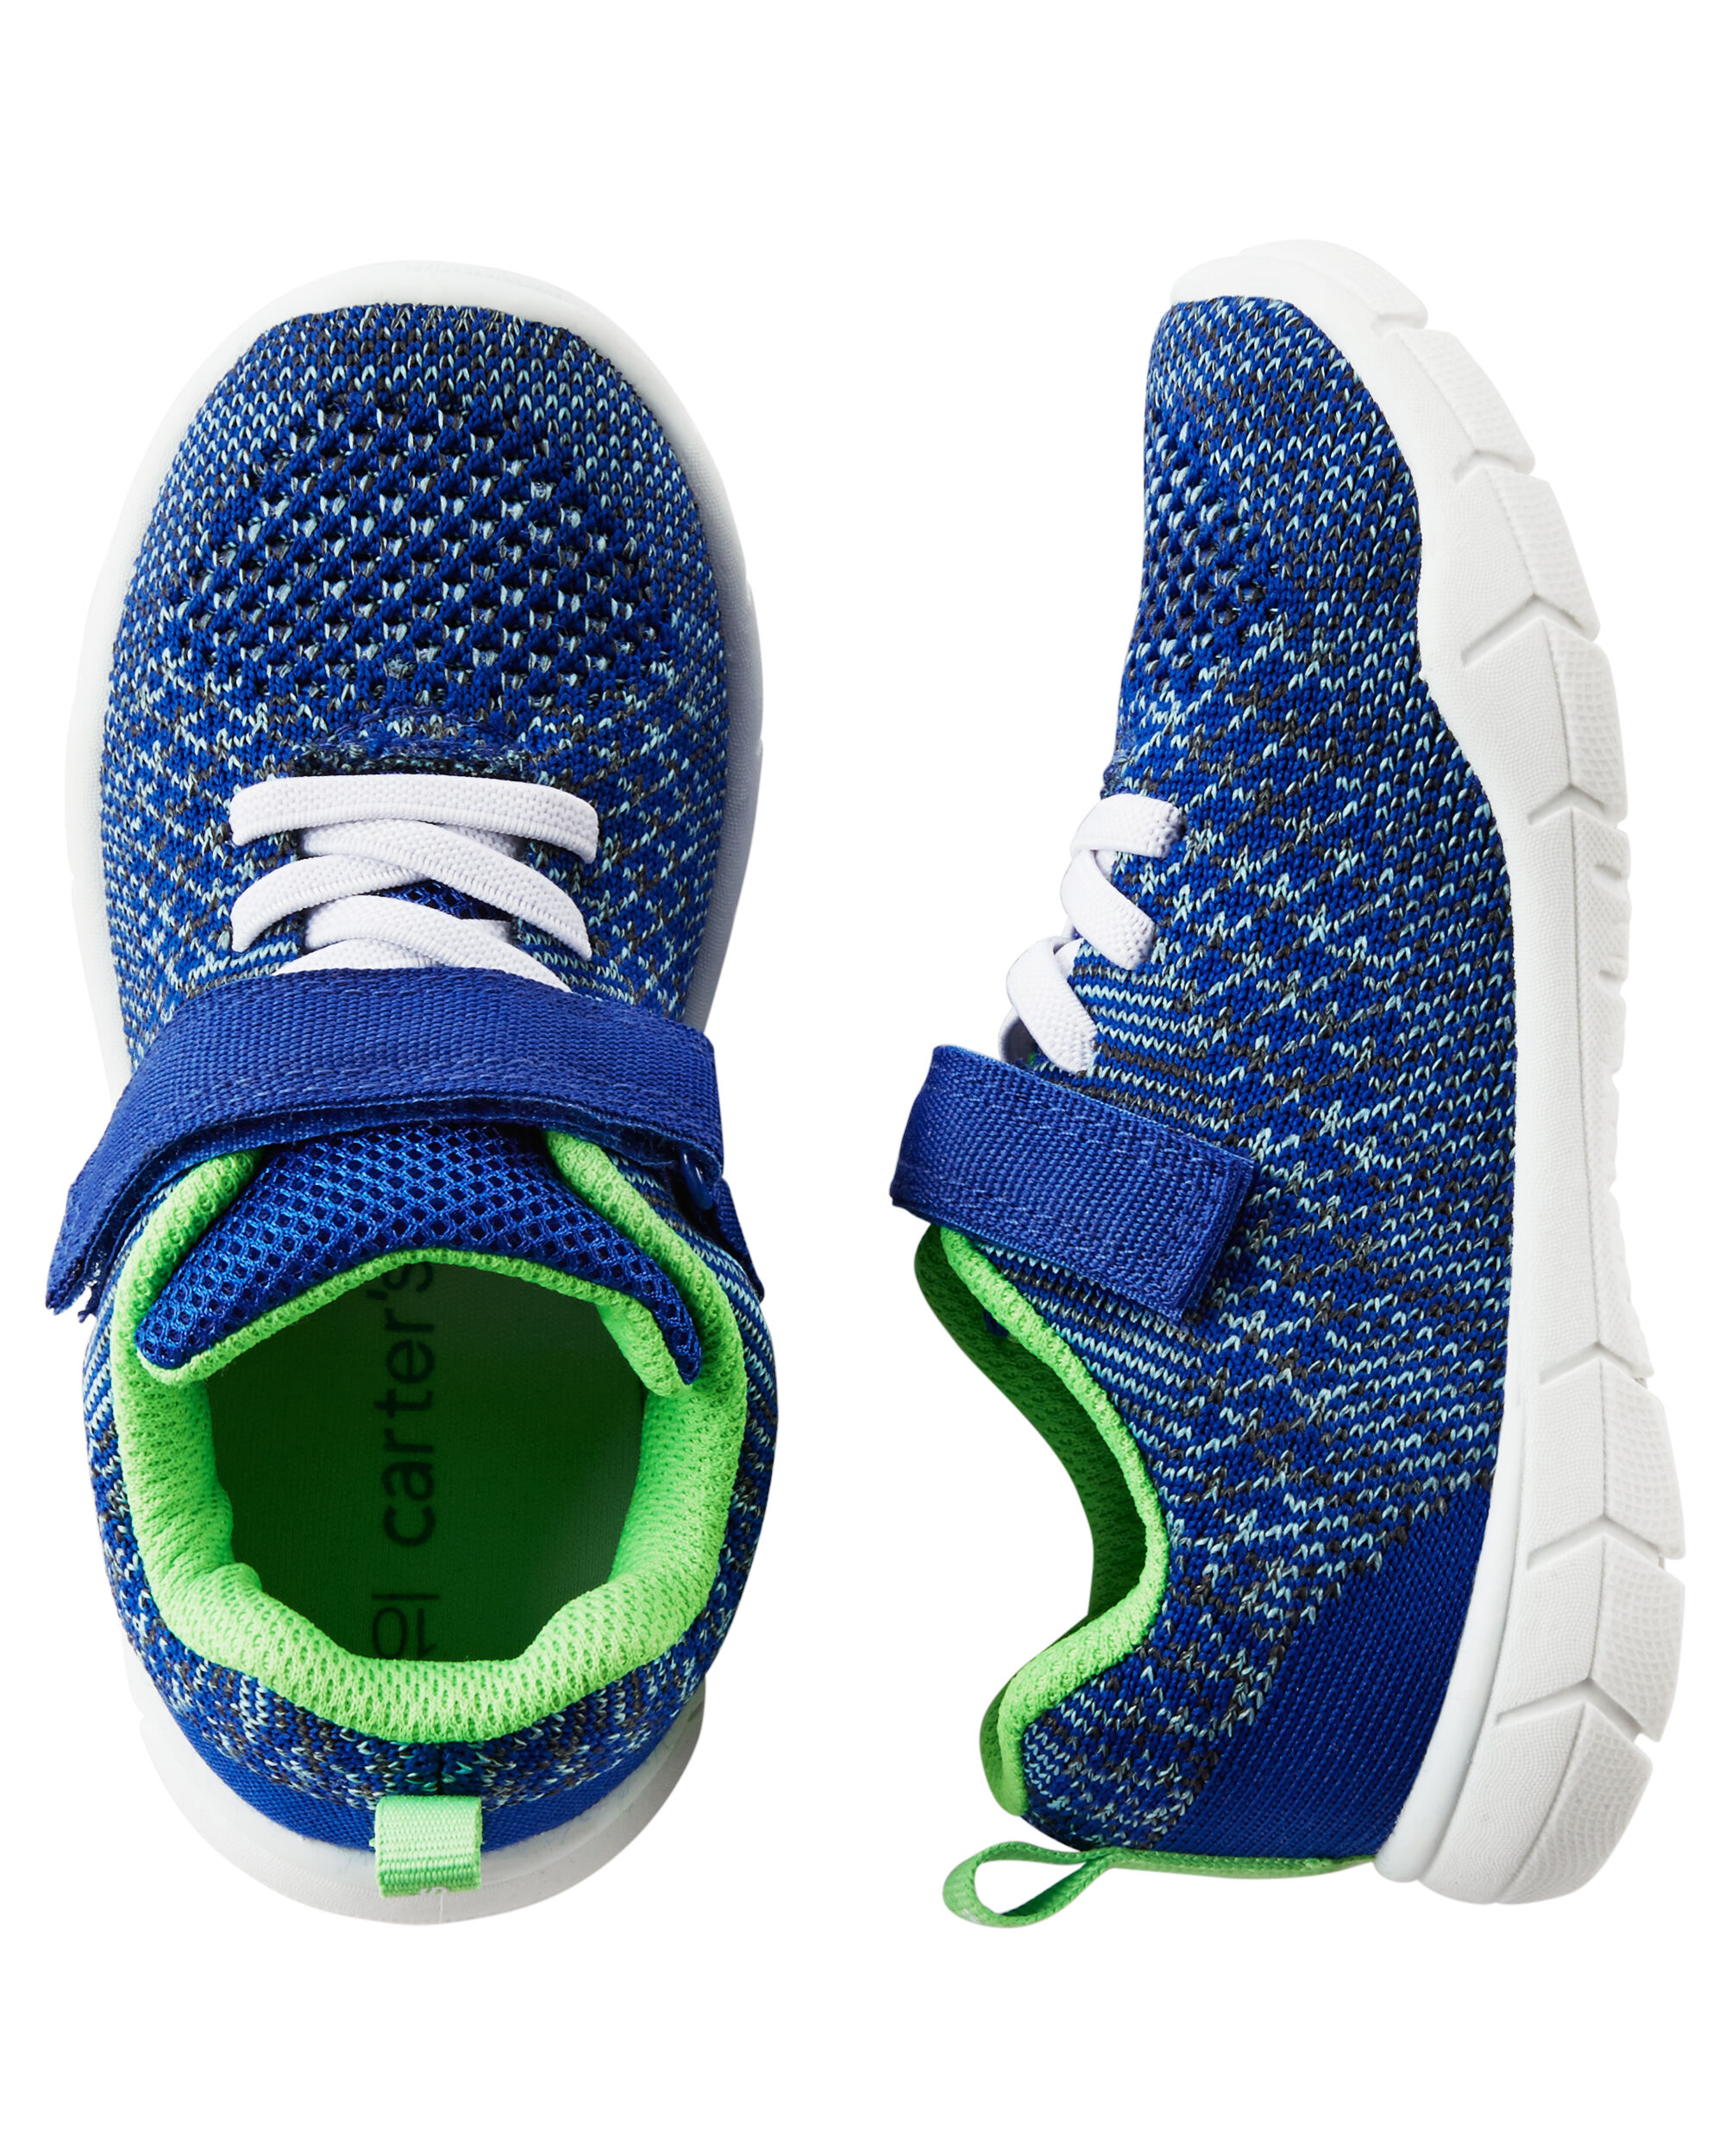 Carter's Athletic Sneakers   carters.com